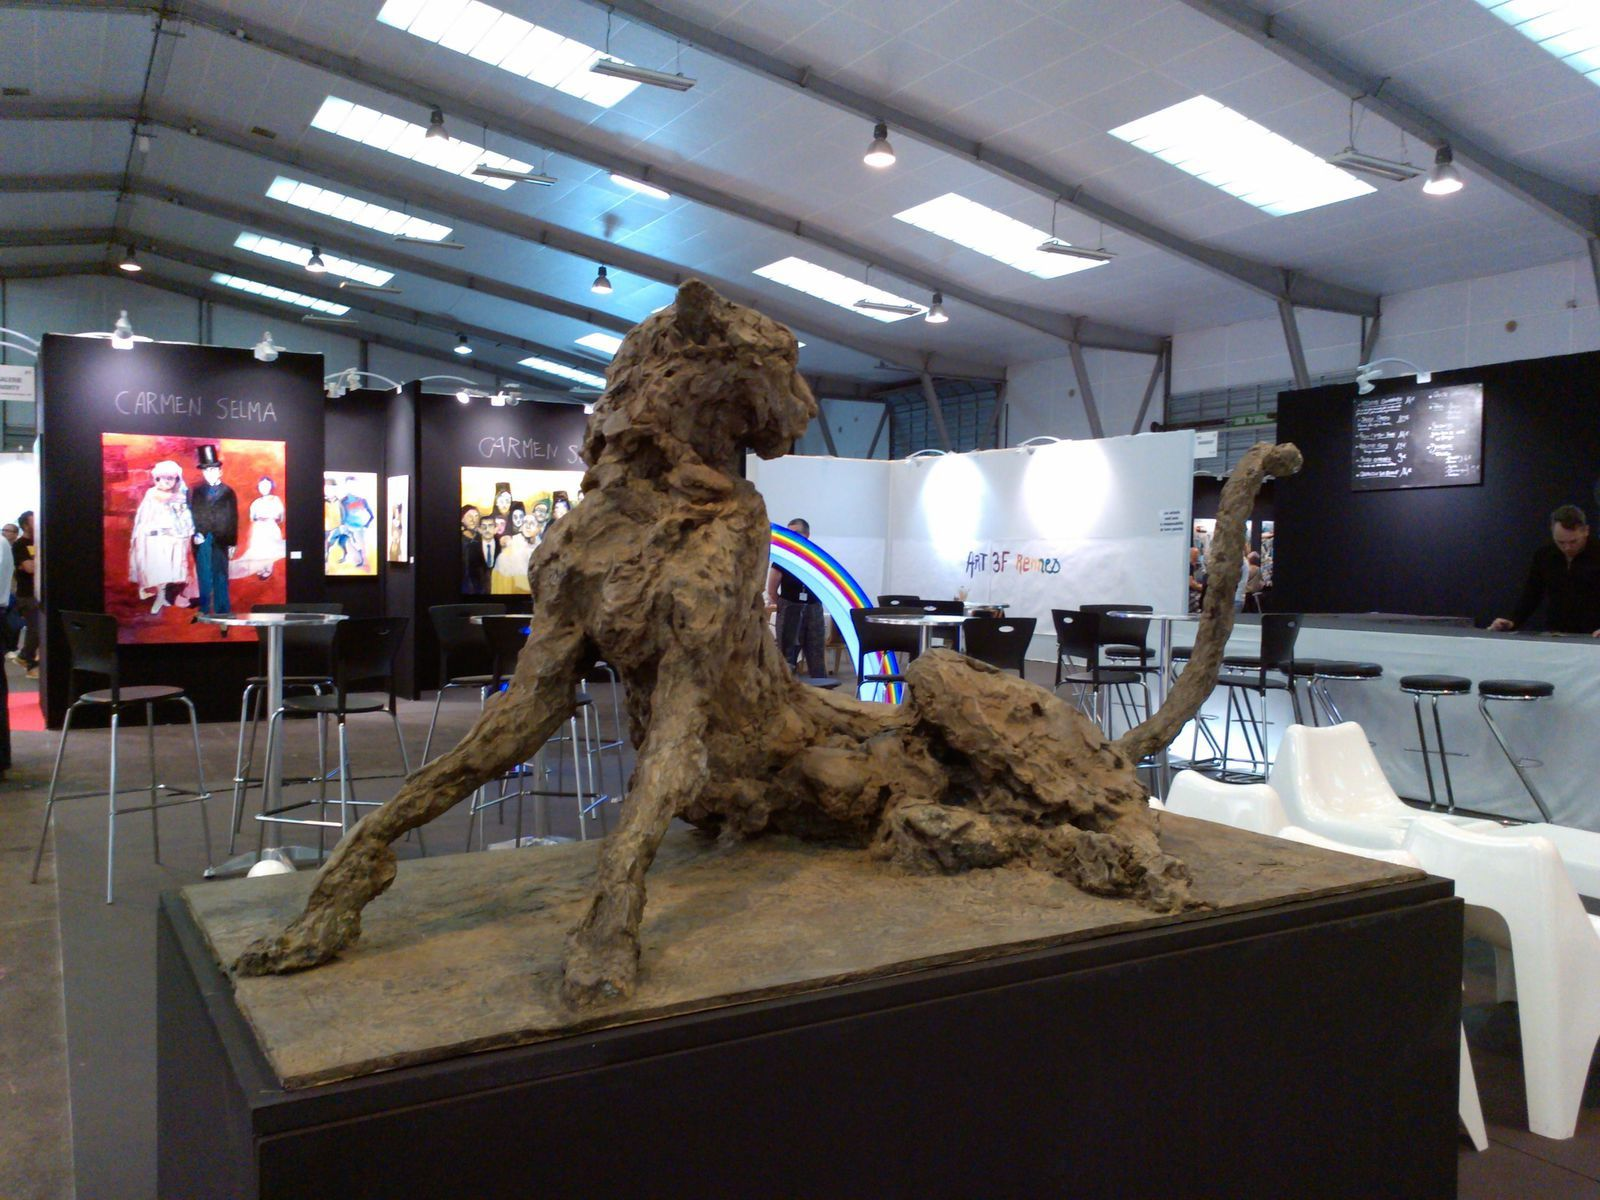 Salon ART3F ART CONTEMPORAIN à Rennes 2015 - Lawrence Wiland-Scordia